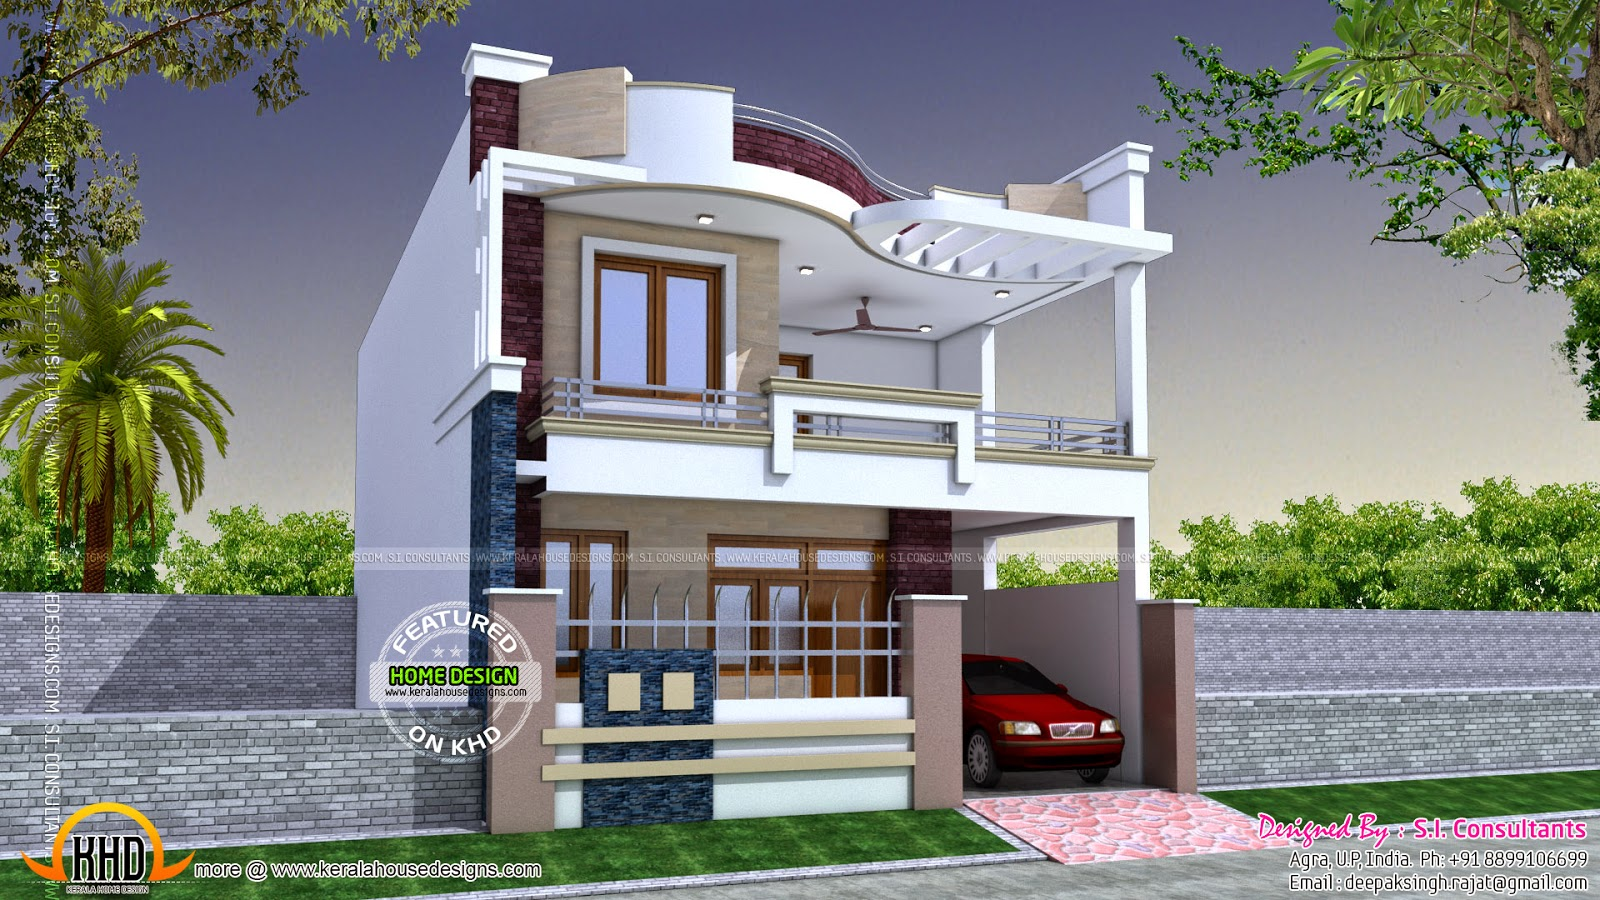 Modern indian home design kerala home design and floor plans Designer houses in india